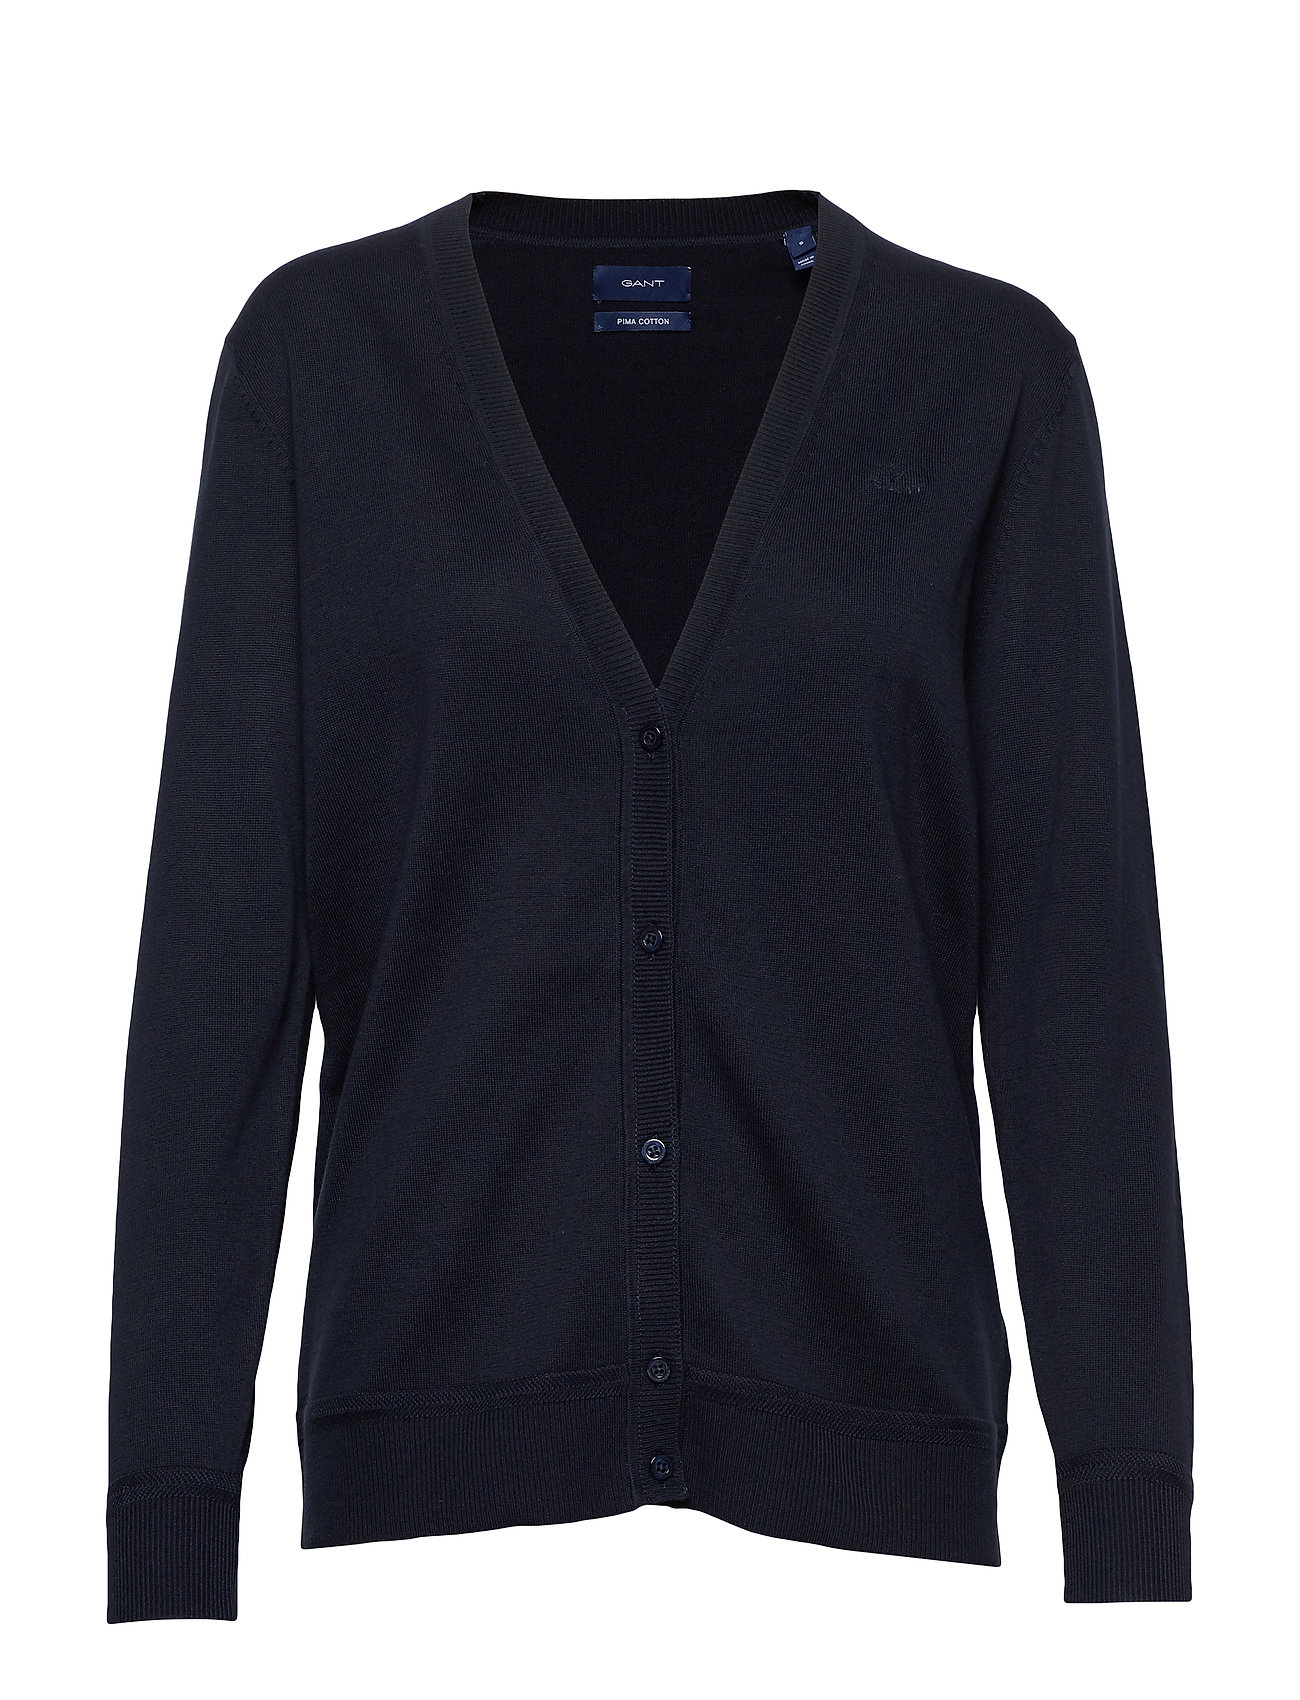 Gant LIGHT COTTON VNECK CARDIGAN - EVENING BLUE